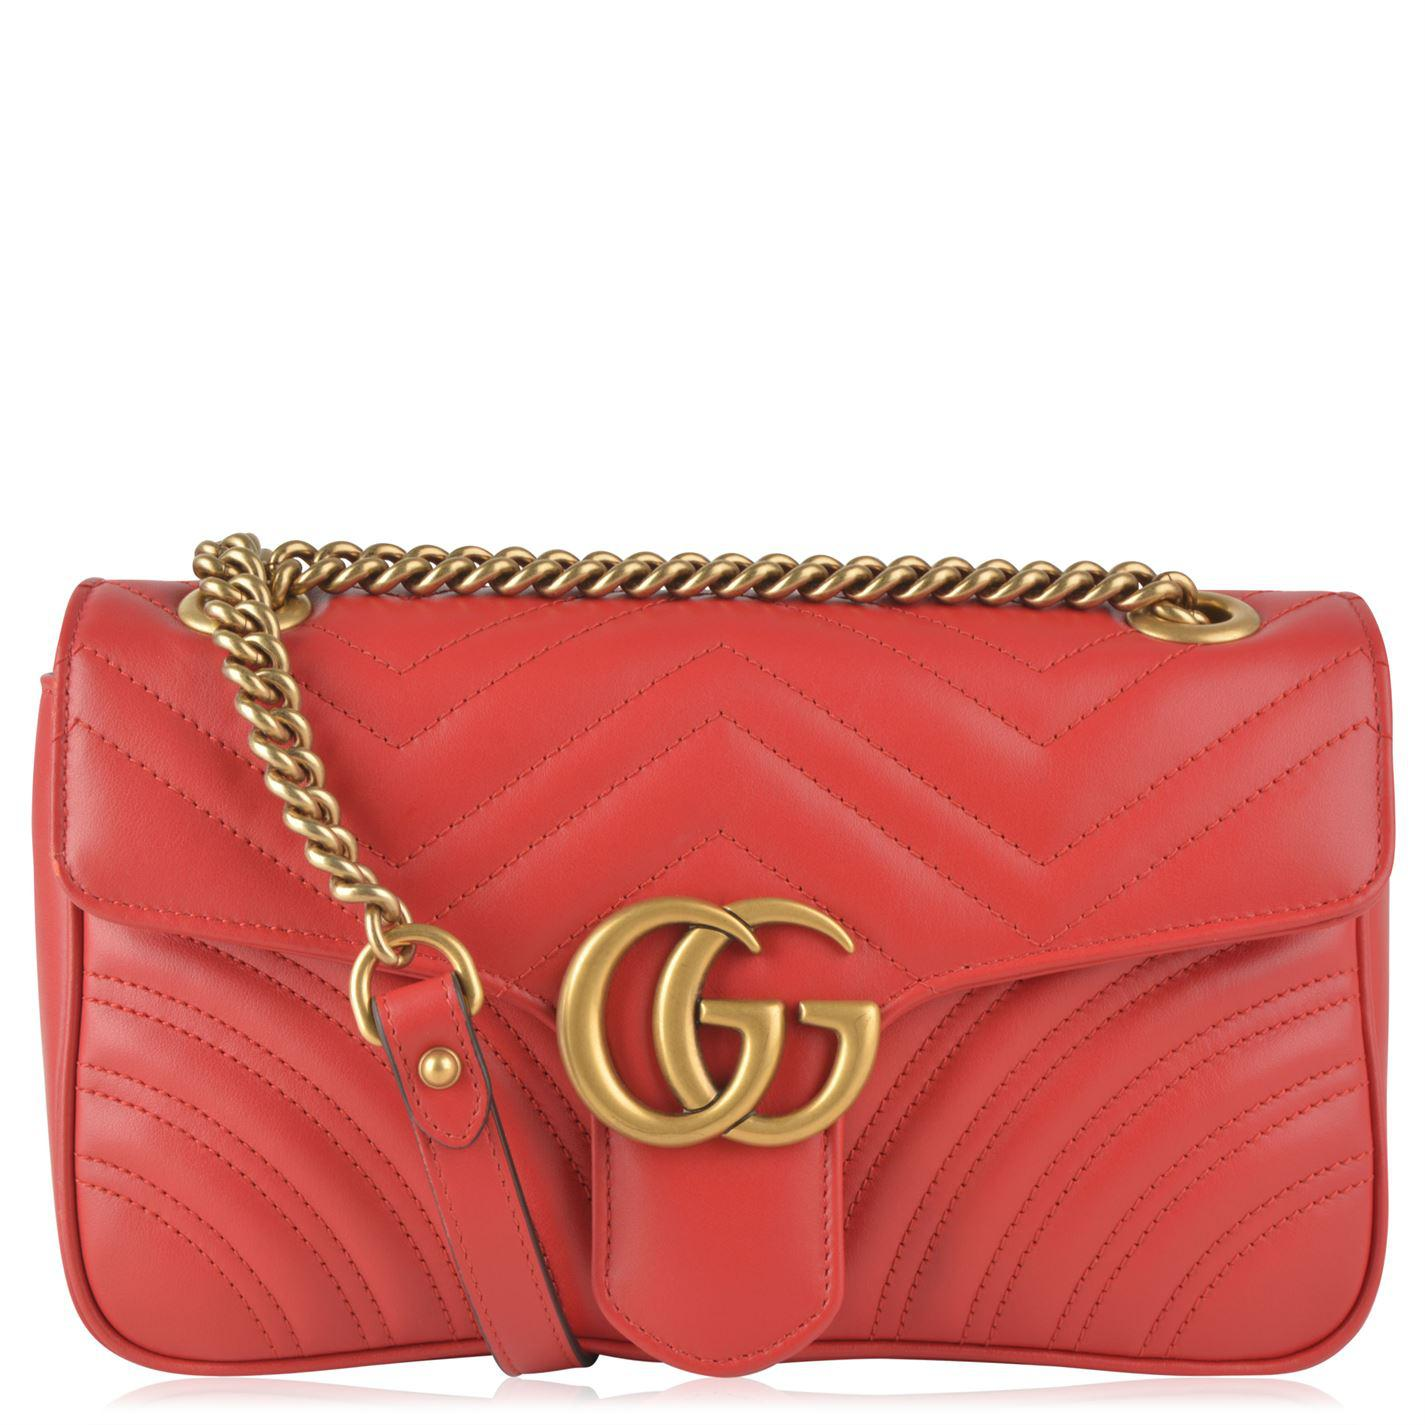 40fe3c9fc62 Lyst - Gucci Mini Gg Marmont 2.0 Quilted Leather Bag in Red - Save 28%